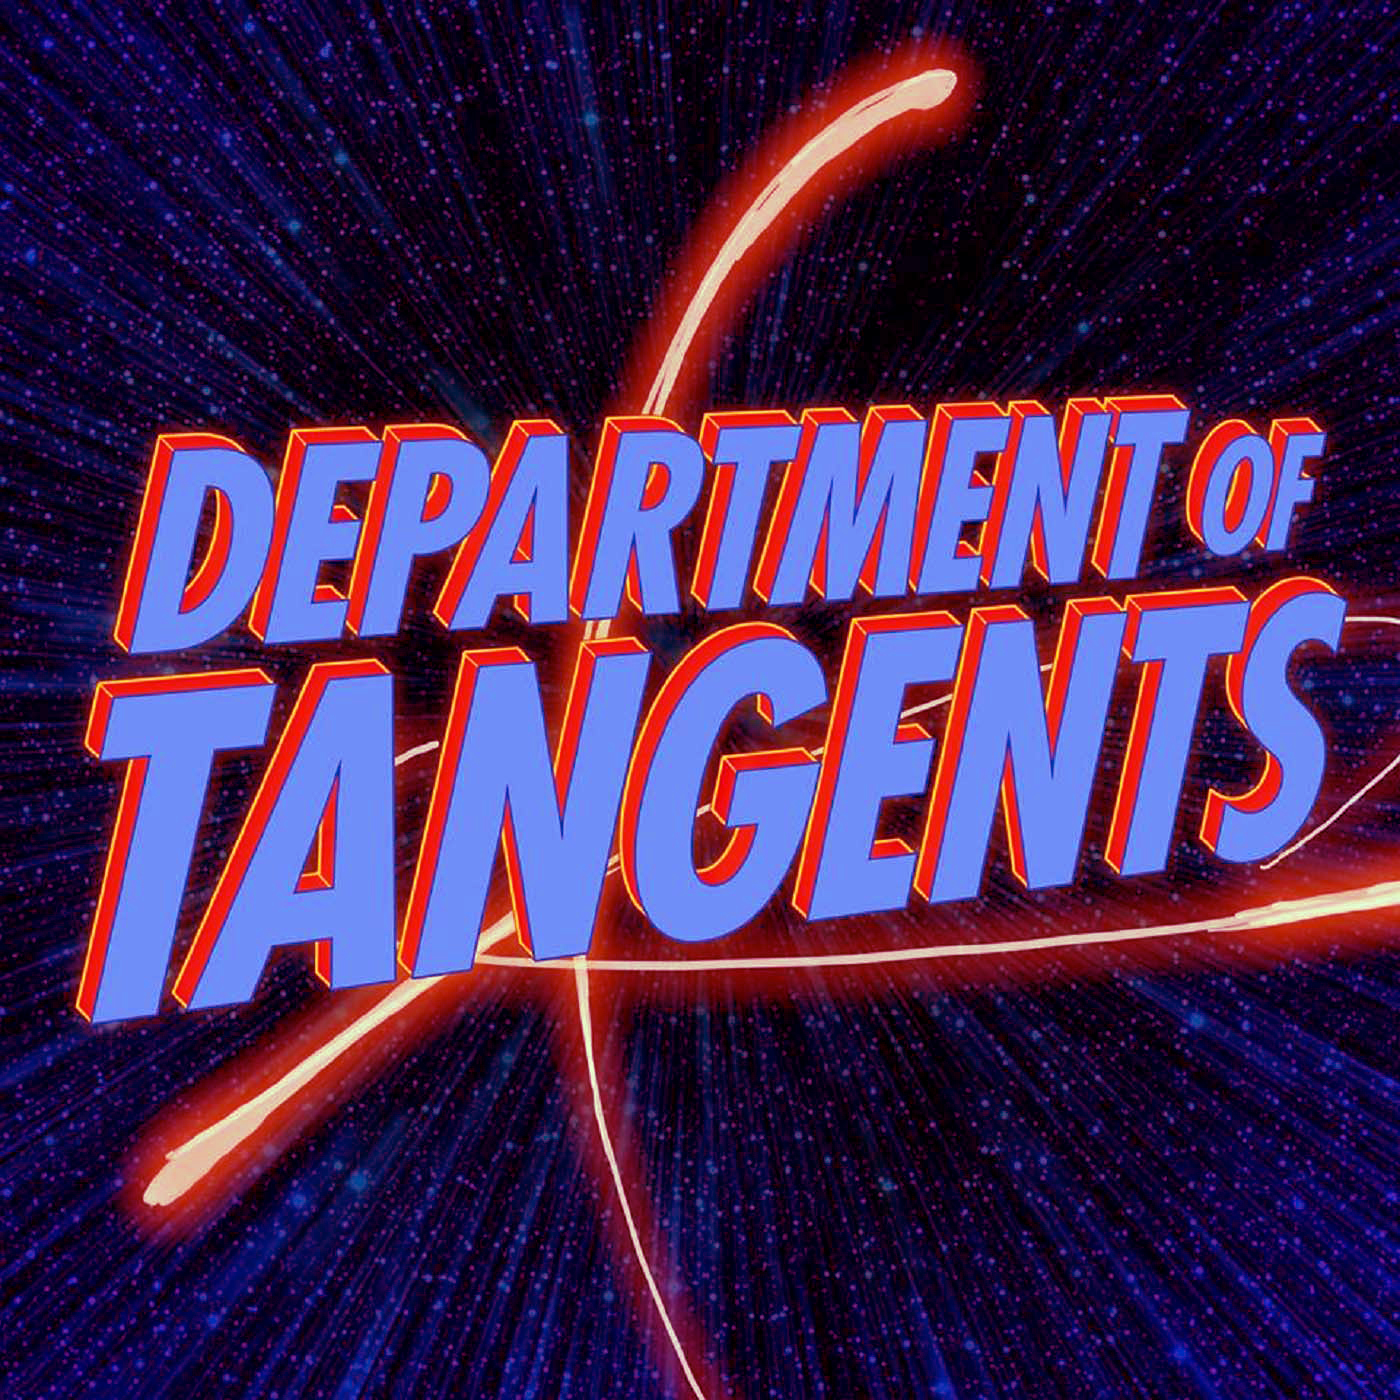 The Department of Tangents Podcast show art